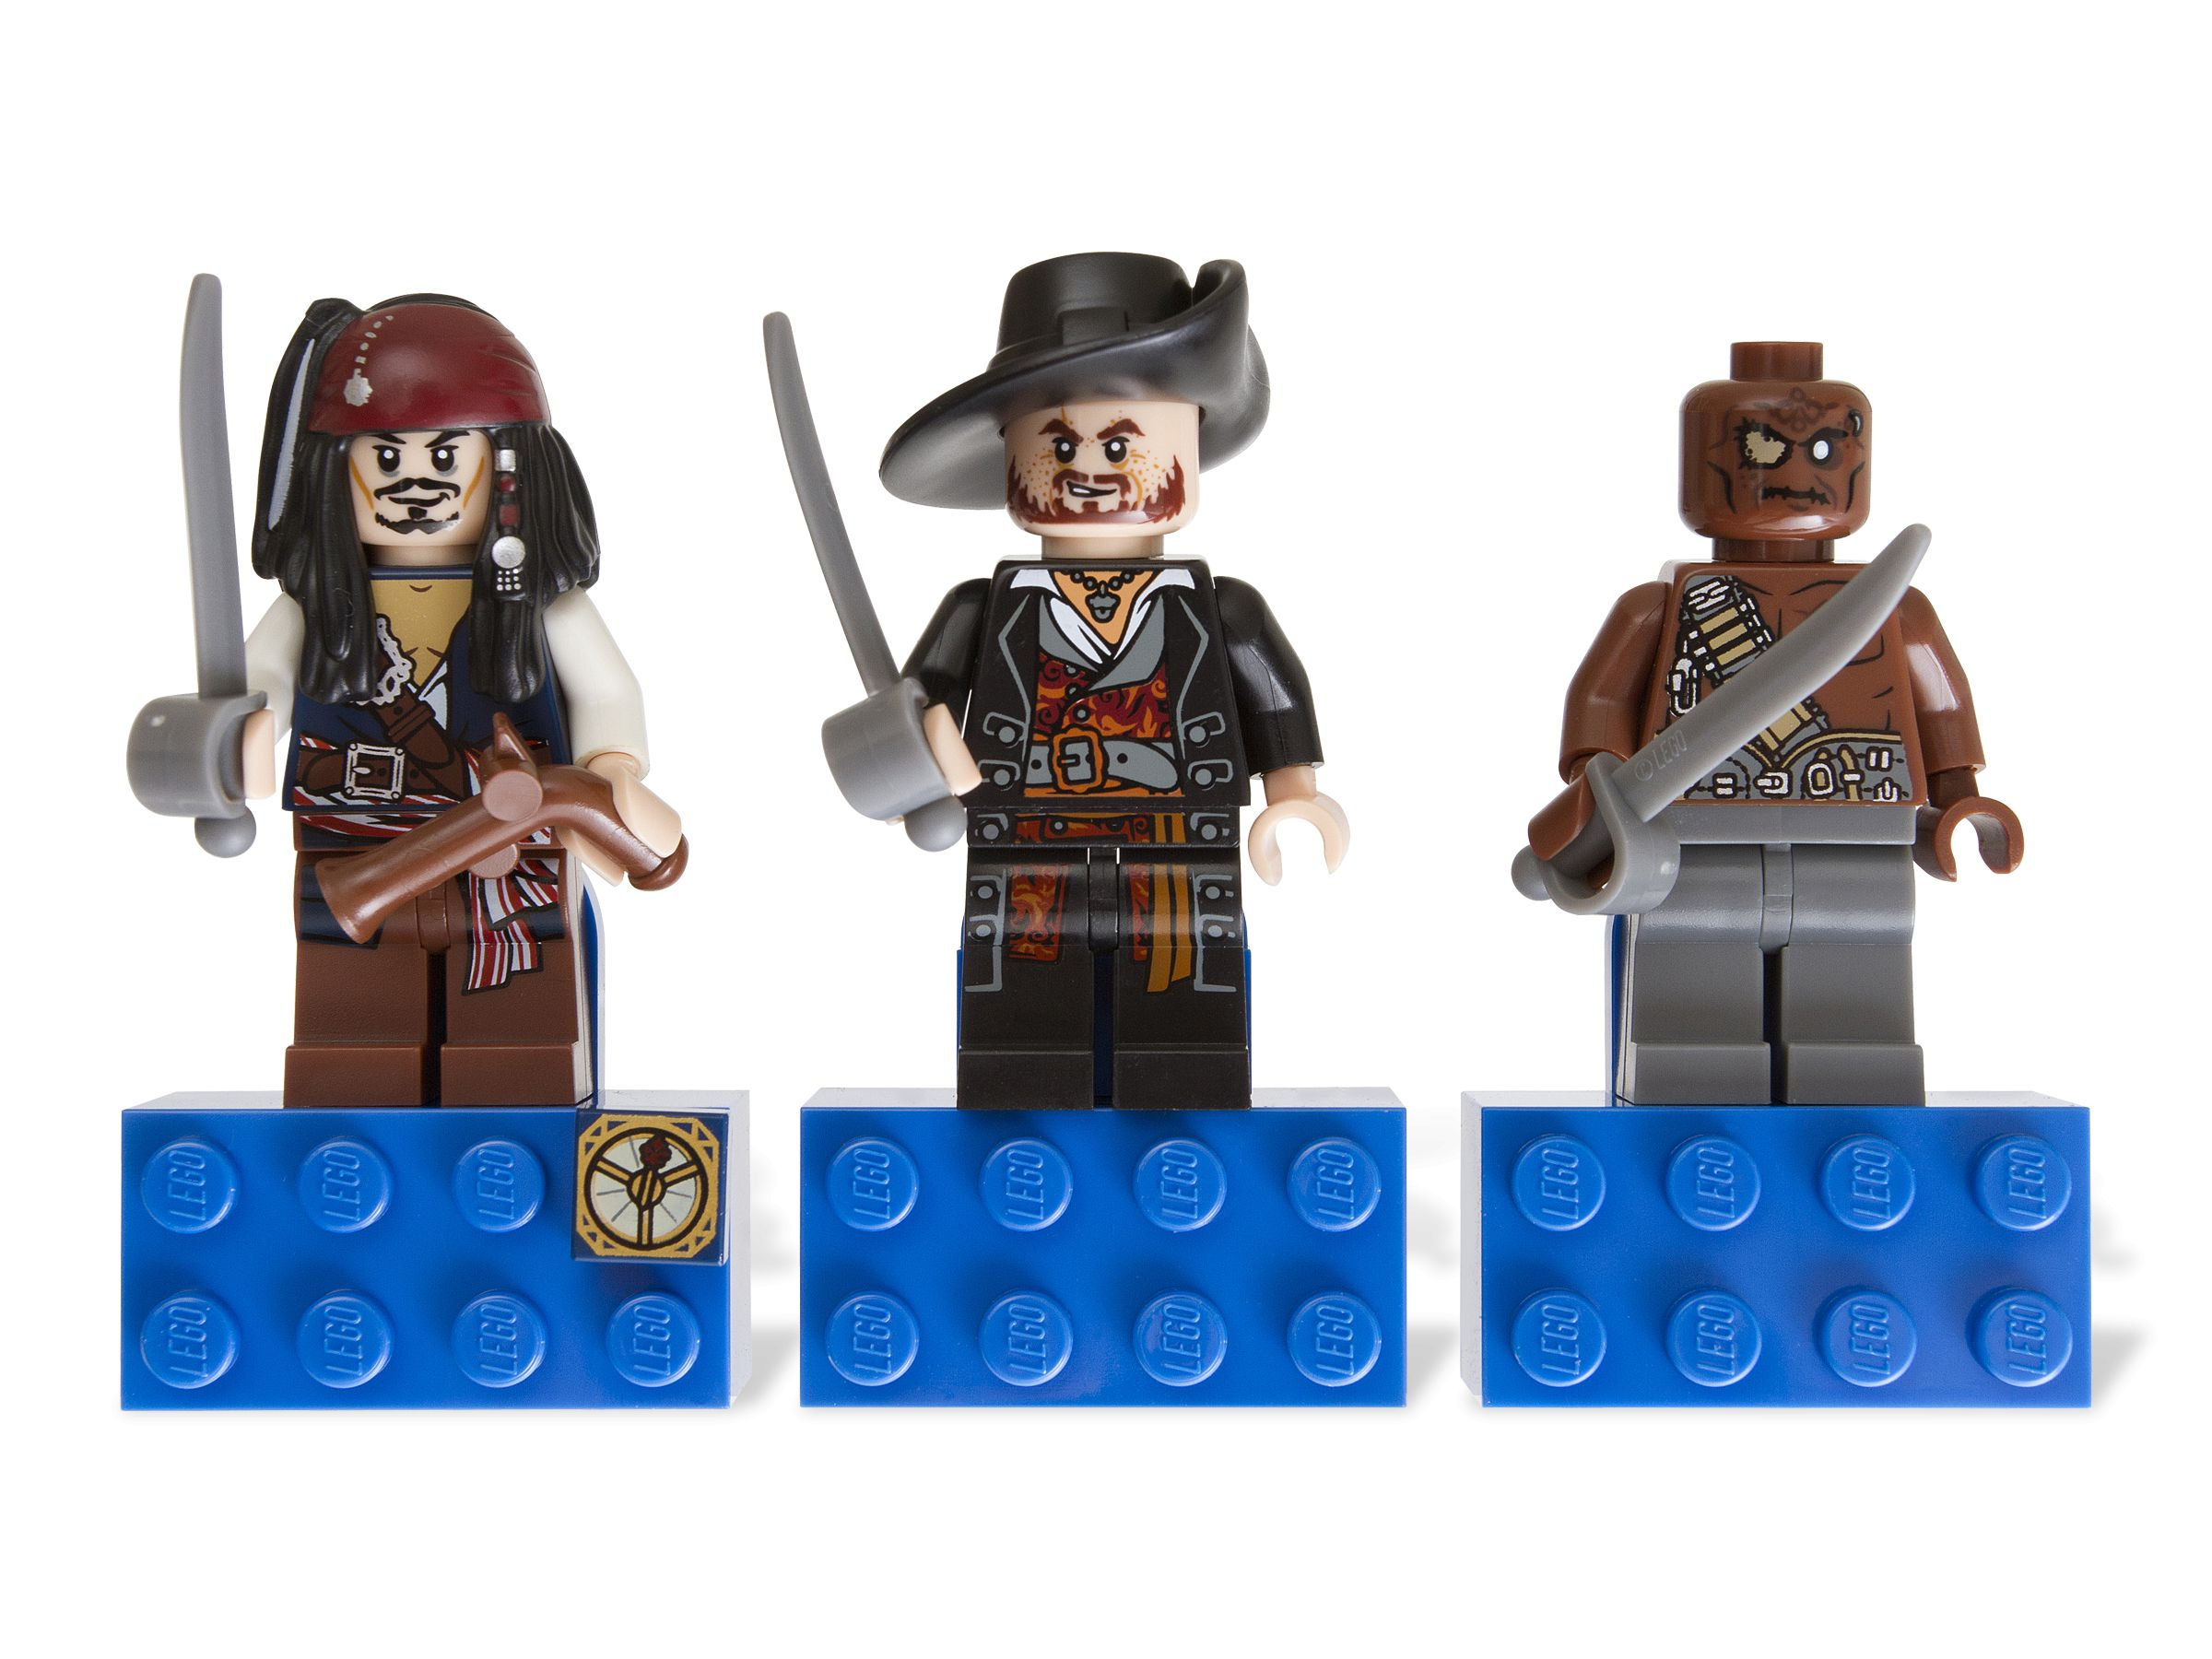 LEGO Gear 853191 Pirates of the Caribbean Magnet Set LEGO_853191.jpg